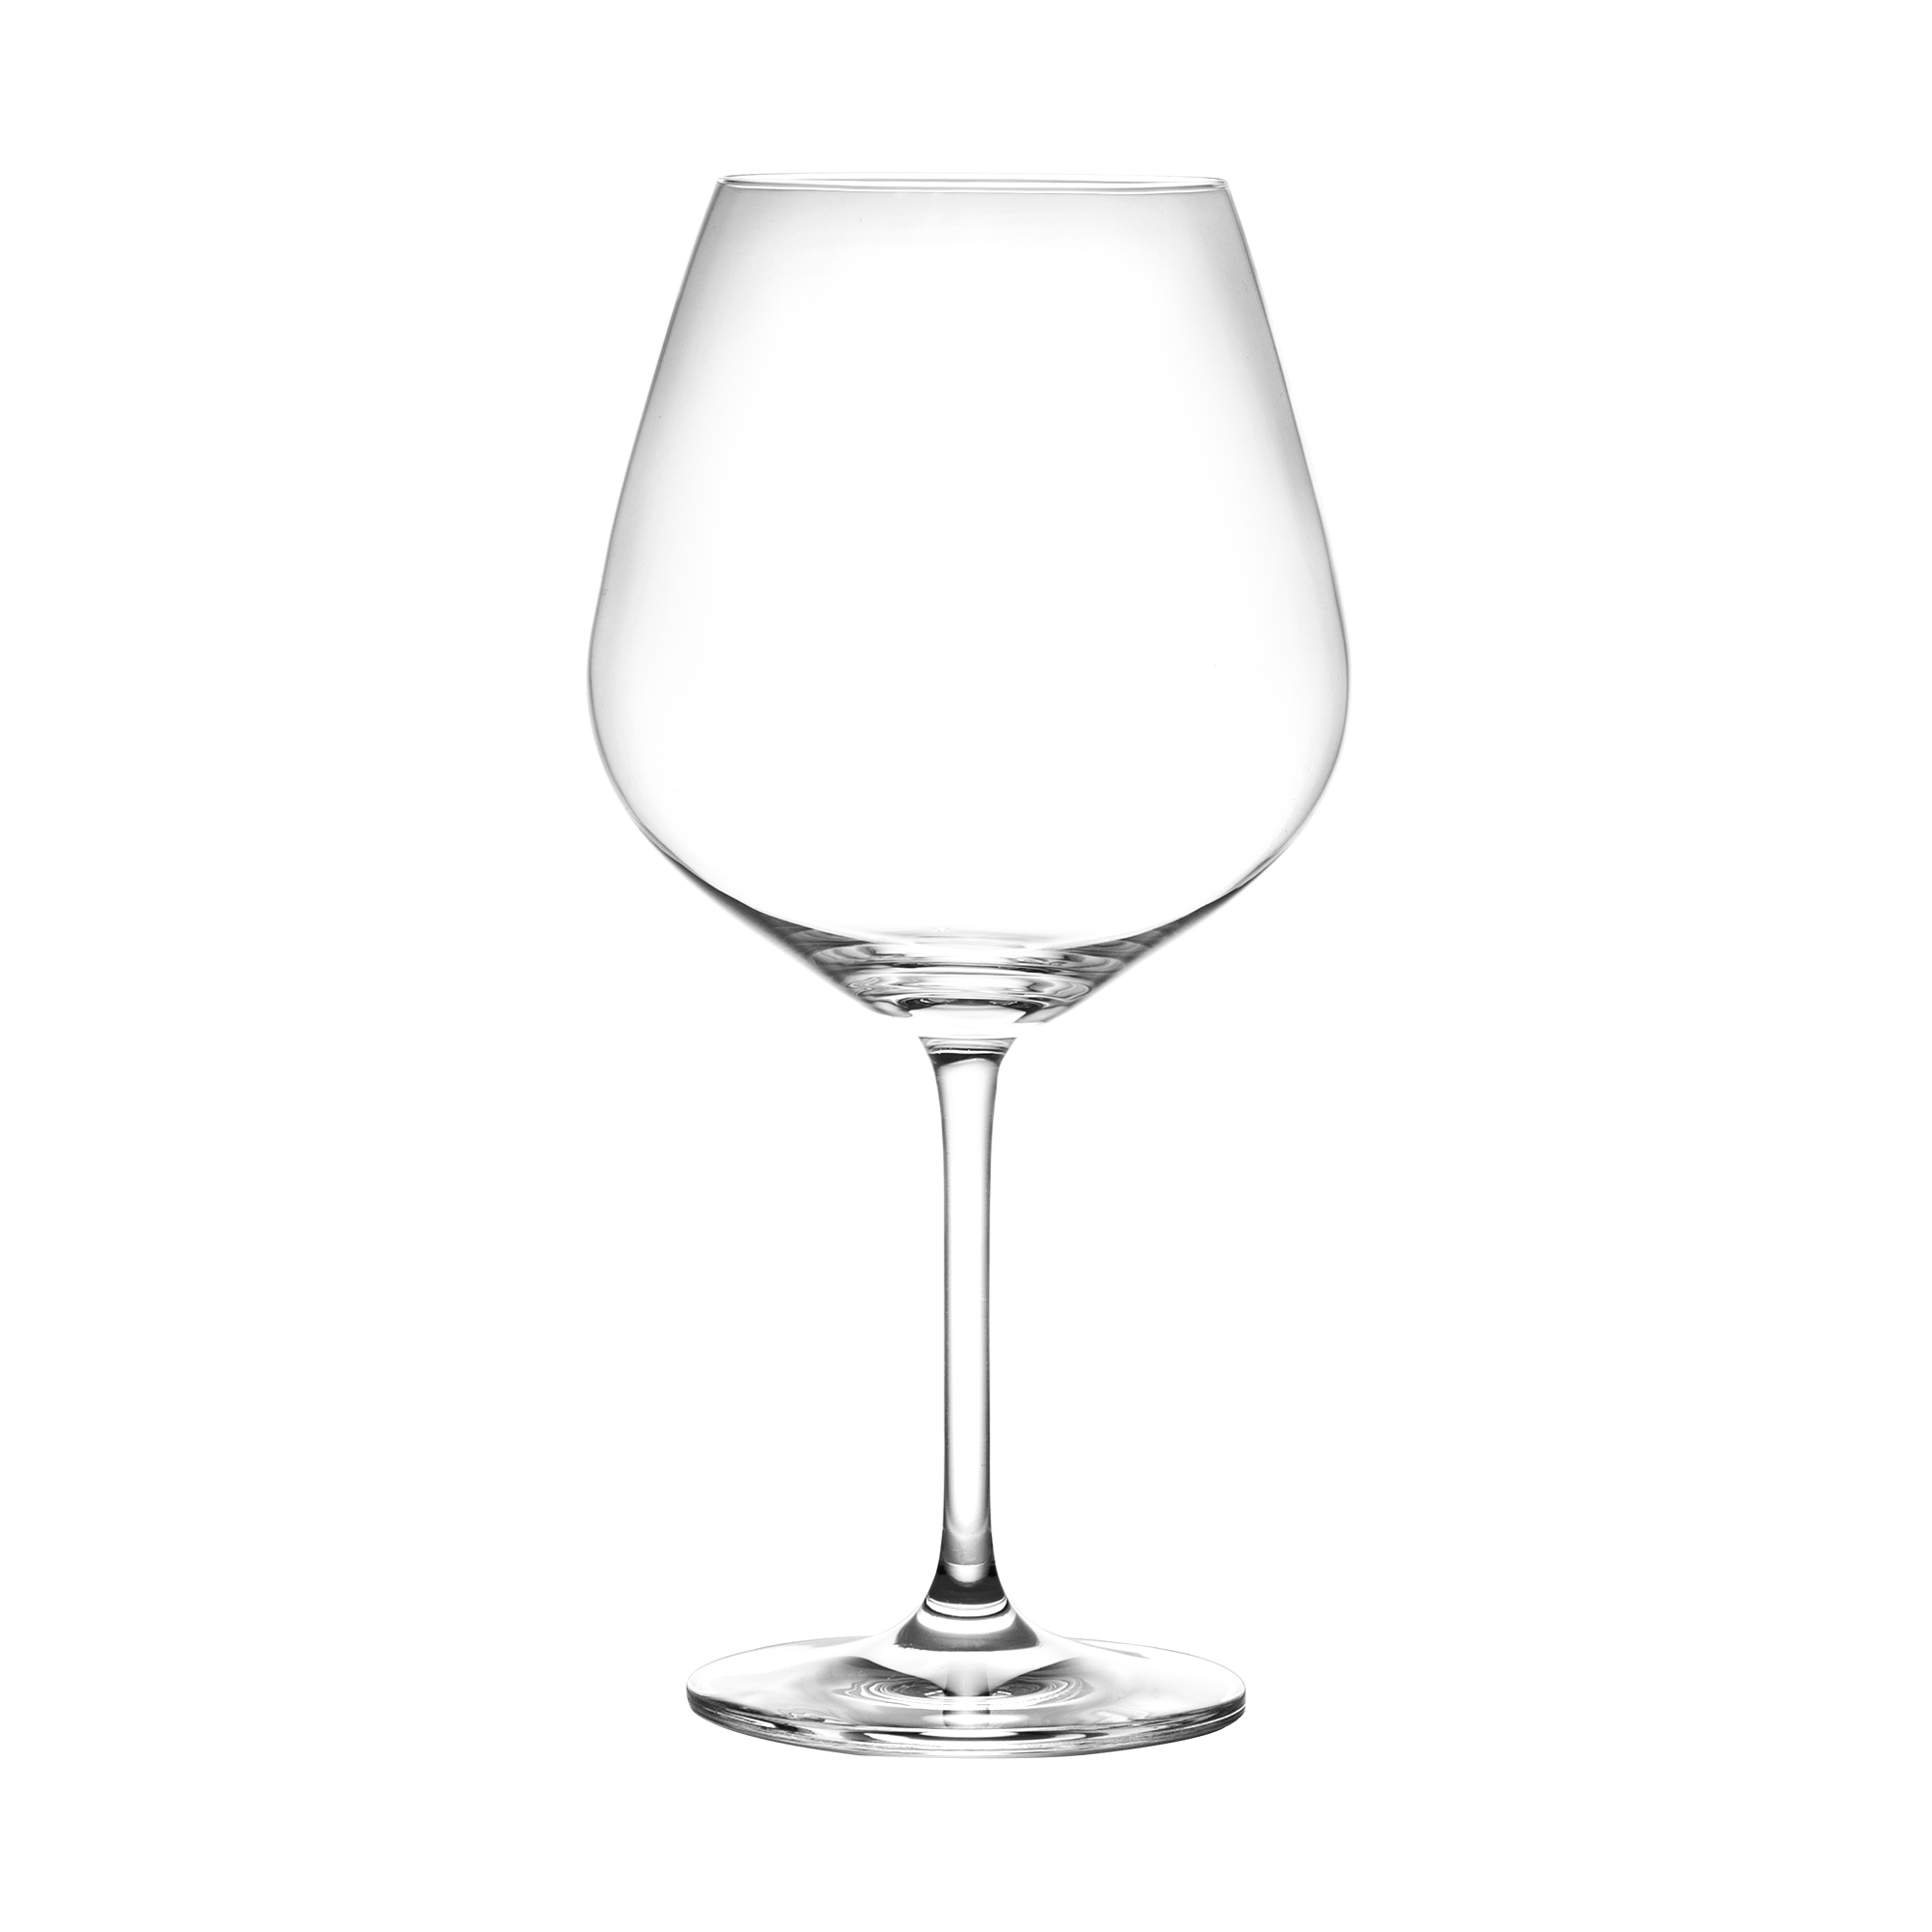 Schott Zwiesel Barware | Schott Wine Glasses | Schott Zwiesel Wine Glasses